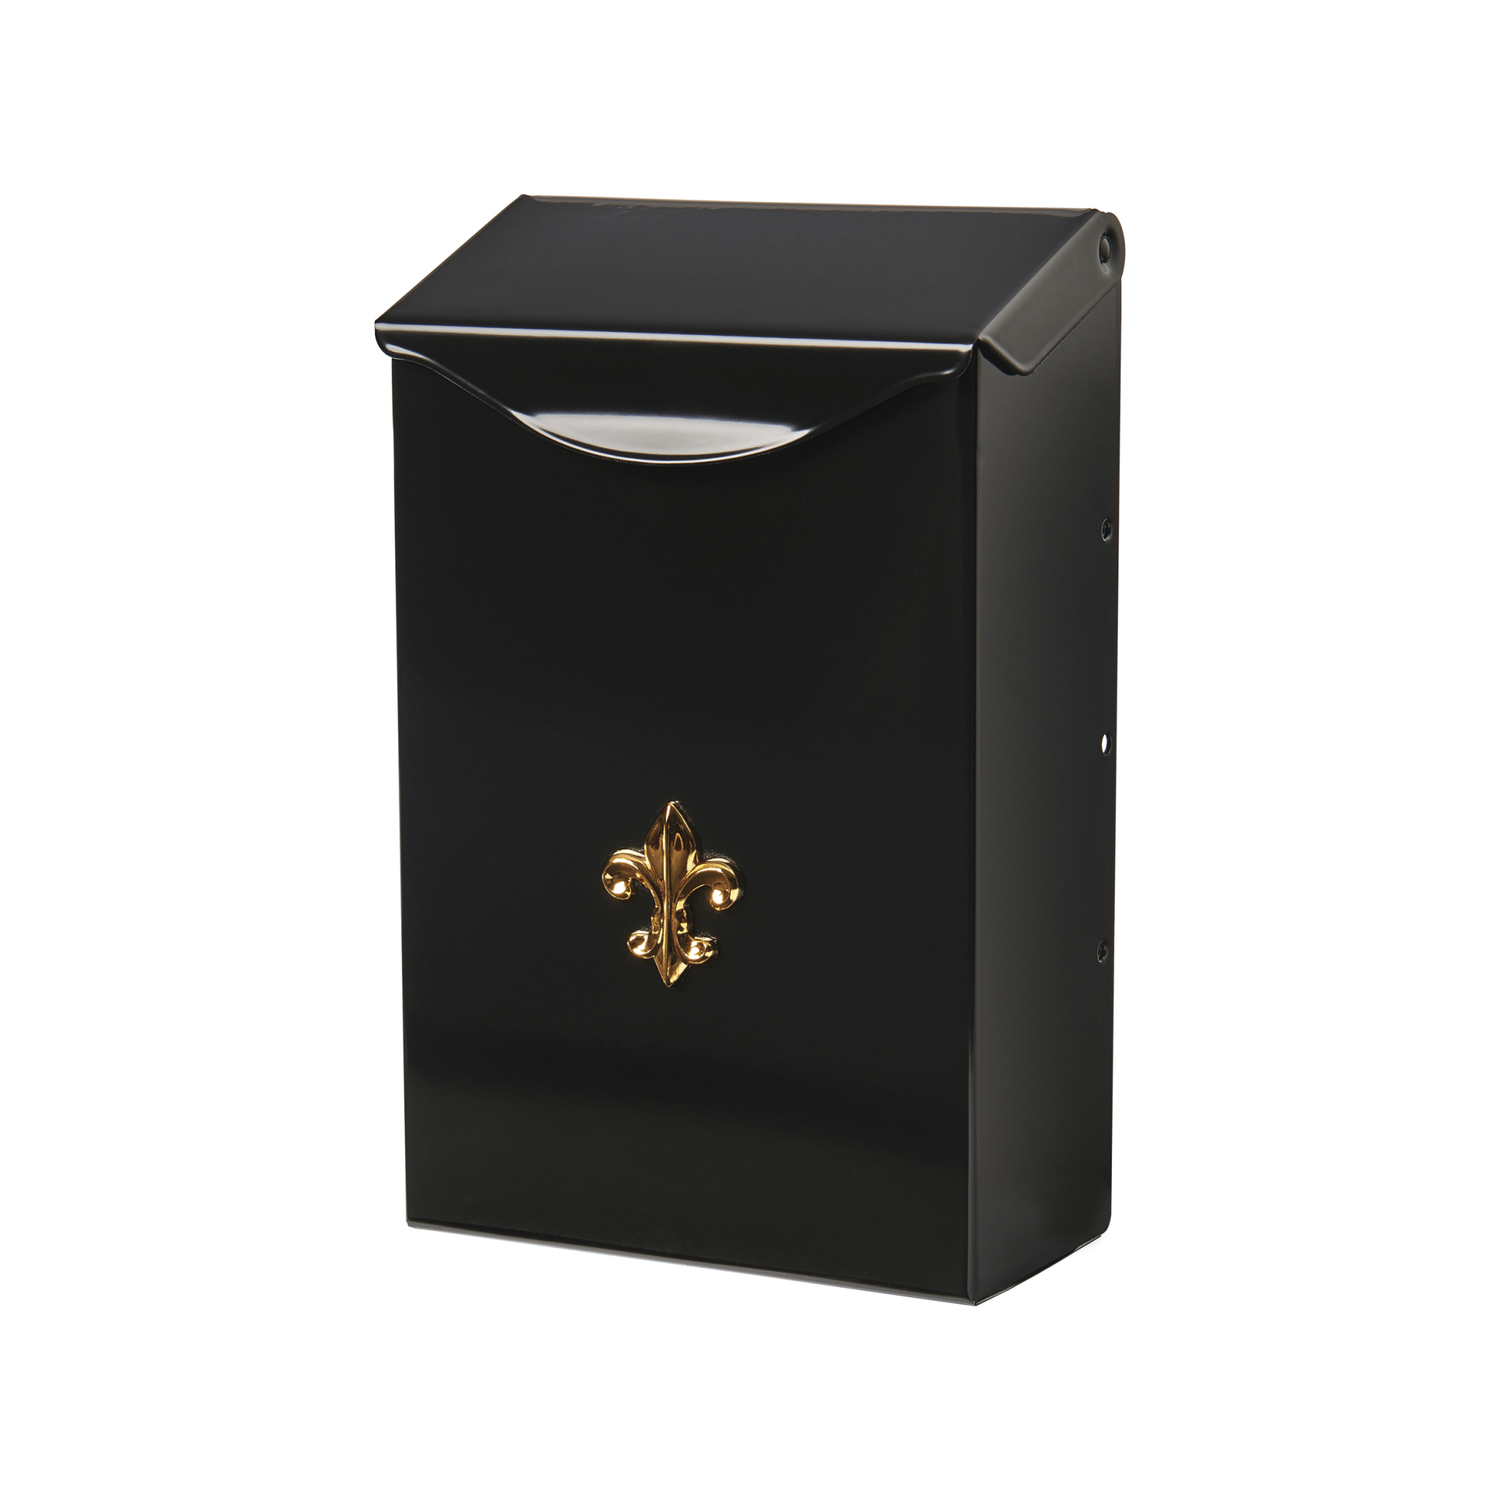 Gibraltar Mailboxes  Gibraltar  City Classic  Wall-Mounted  Black  3-1/4 in. W x 6-1/4 in. L x 6-1/4